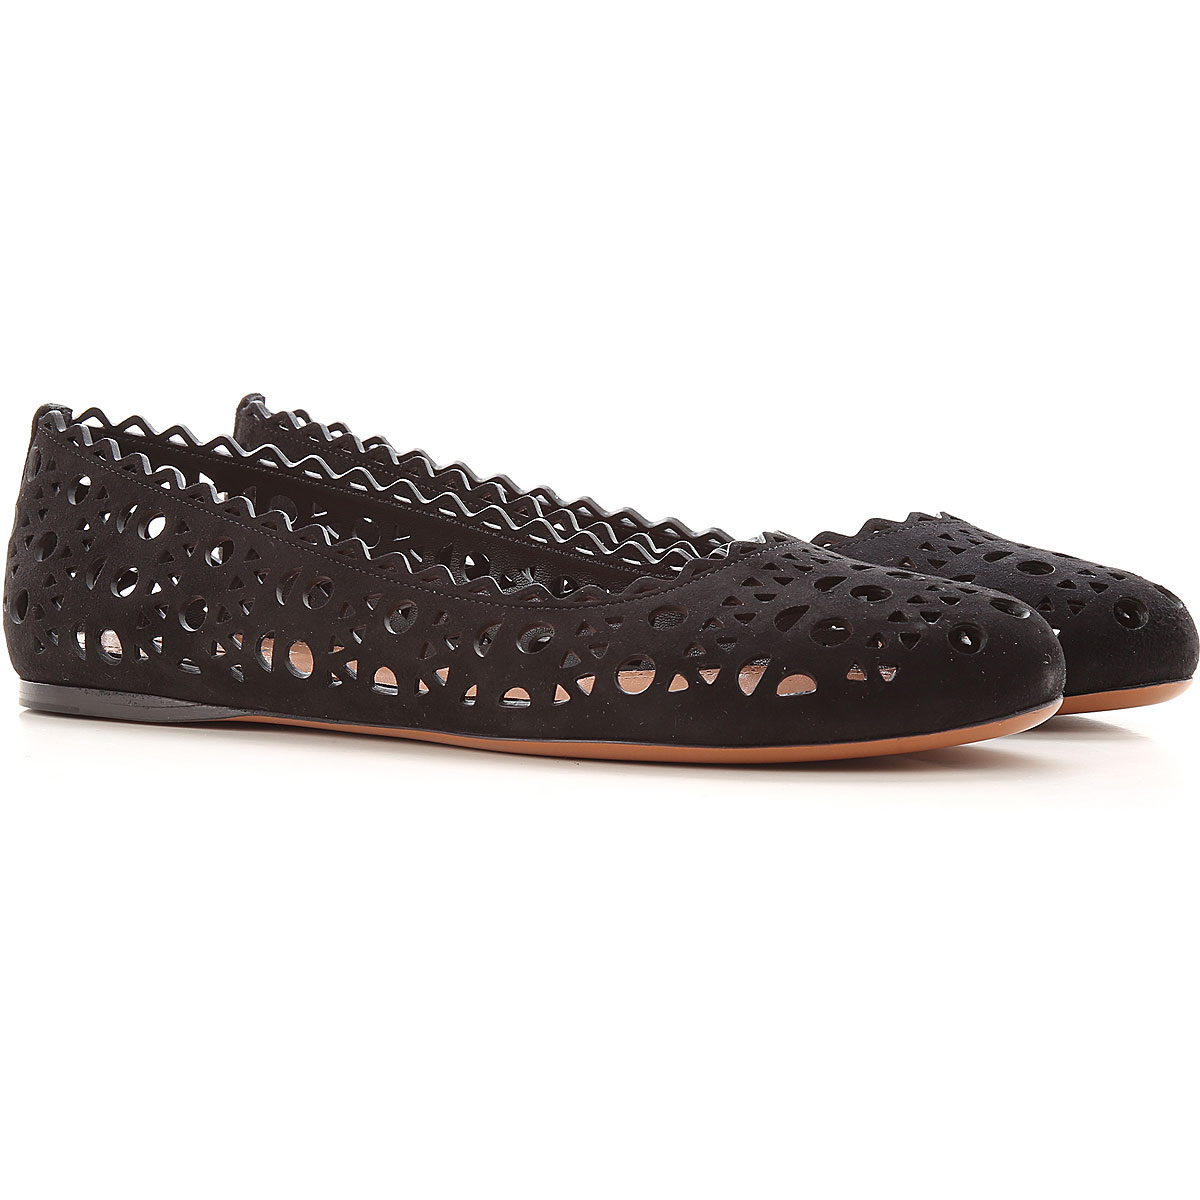 Alaia Ballet Flats Ballerina Shoes for Women On Sale, Black, Leather, 2019, 10 6 7 8.5 9